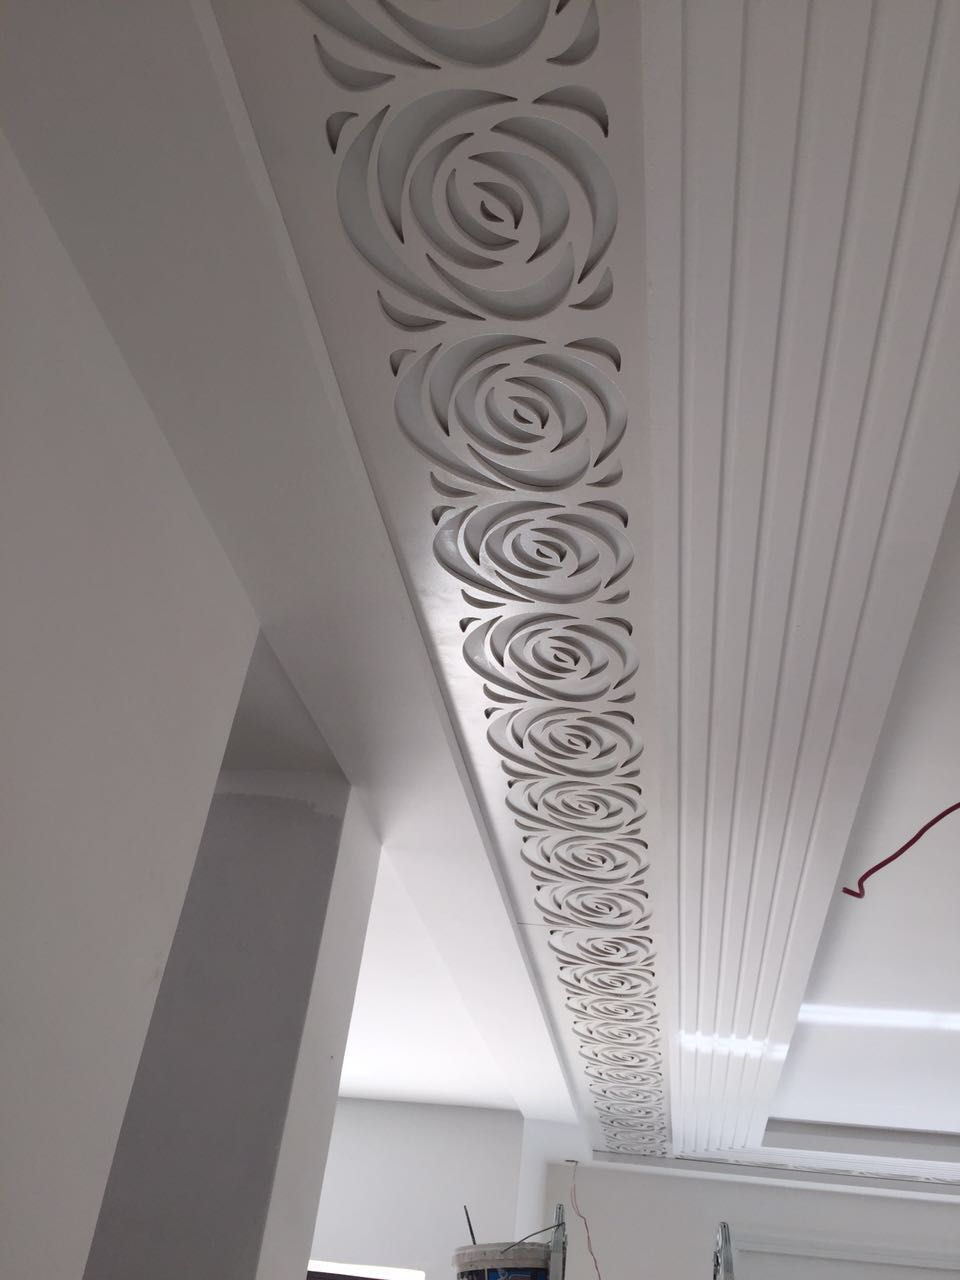 False Ceiling Ideas Design Bedroom Treatments Hallway Decorating Dining Room Modern Cornice Drywall